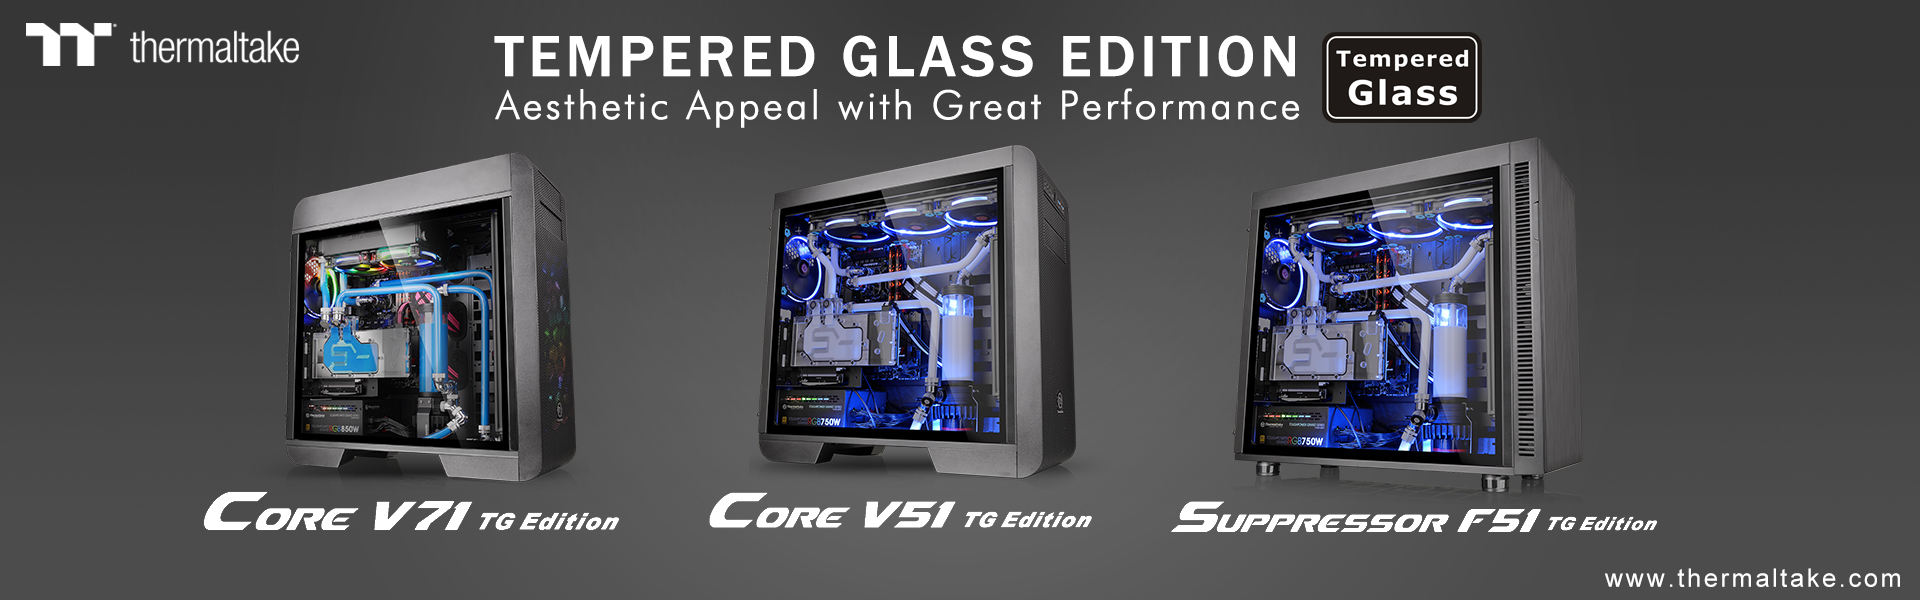 thermaltake launches new tempered glass edition chassis series core v71 core v51 suppressor f51 Thermaltake เปิดตัวเคสรุ่นใหม่ล่าสุด Core V71 Tempered Glass Edition Full Tower Chassis, Core V51 Tempered Glass Edition Mid Tower Chassis, และ Suppressor F51 Tempered Glass Edition Mid Tower Chassis พร้อมกระจกนิรภัยที่หนาถึง 4mm